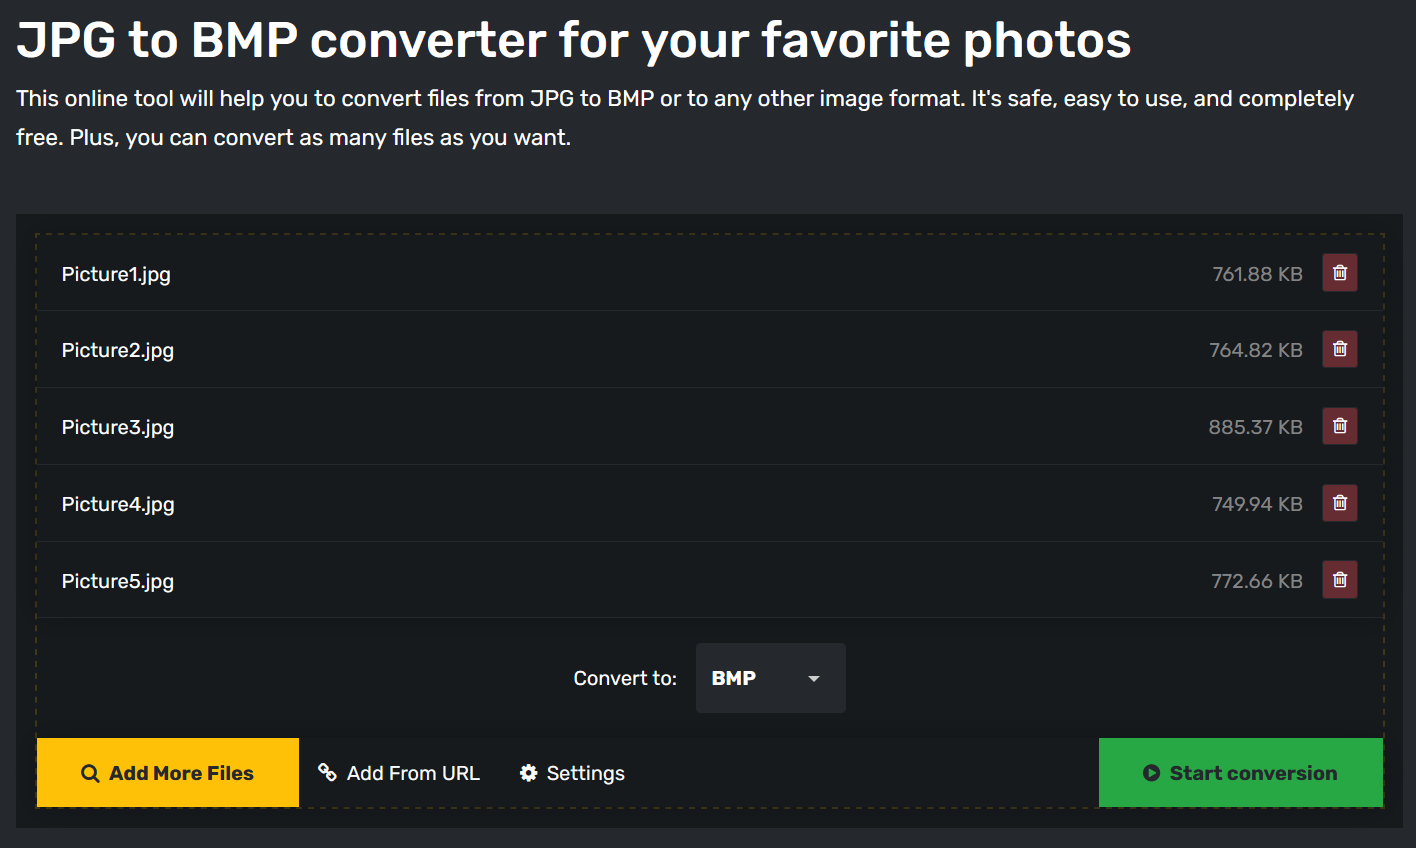 How to convert JPG to BMP online?